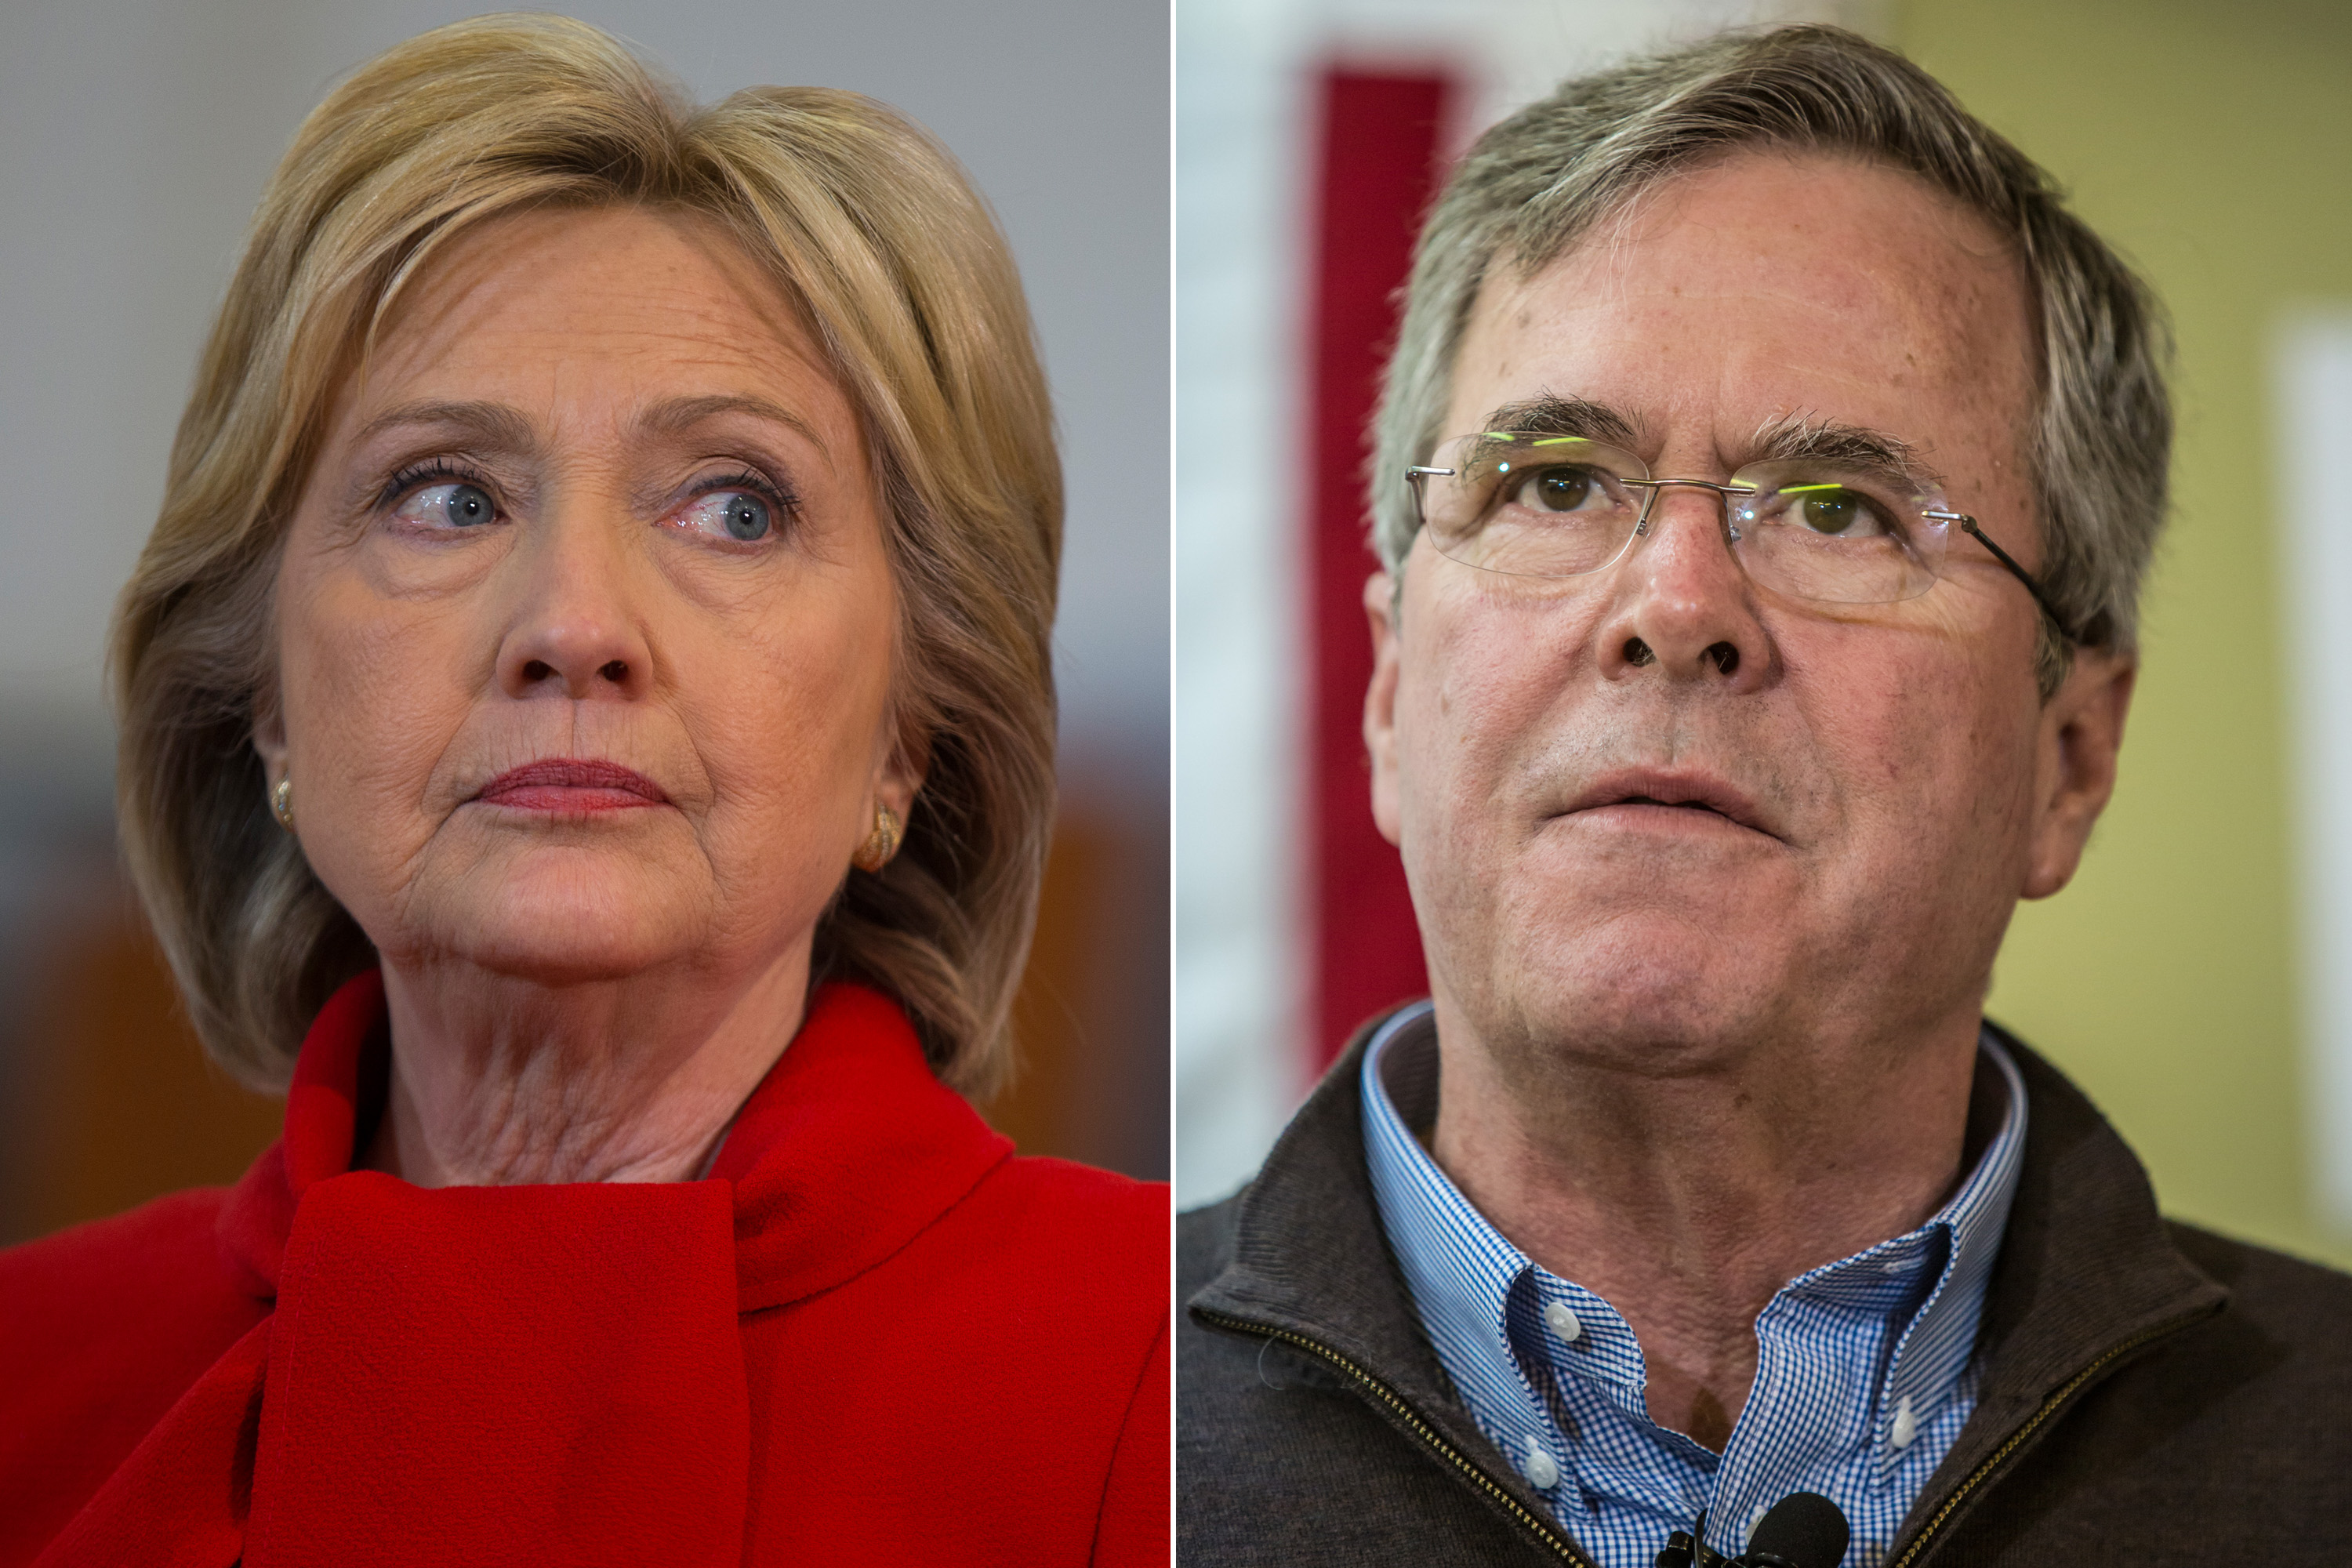 Left  Hillary Clinton speaks during a campaign rally at Burford Garner Elementary School in North Liberty, Iowa on Jan.24, 2016.  Right  Jeb Bush speaks at a campaign event at his local field office in Hiawatha, Iowa on Jan. 31, 2016.